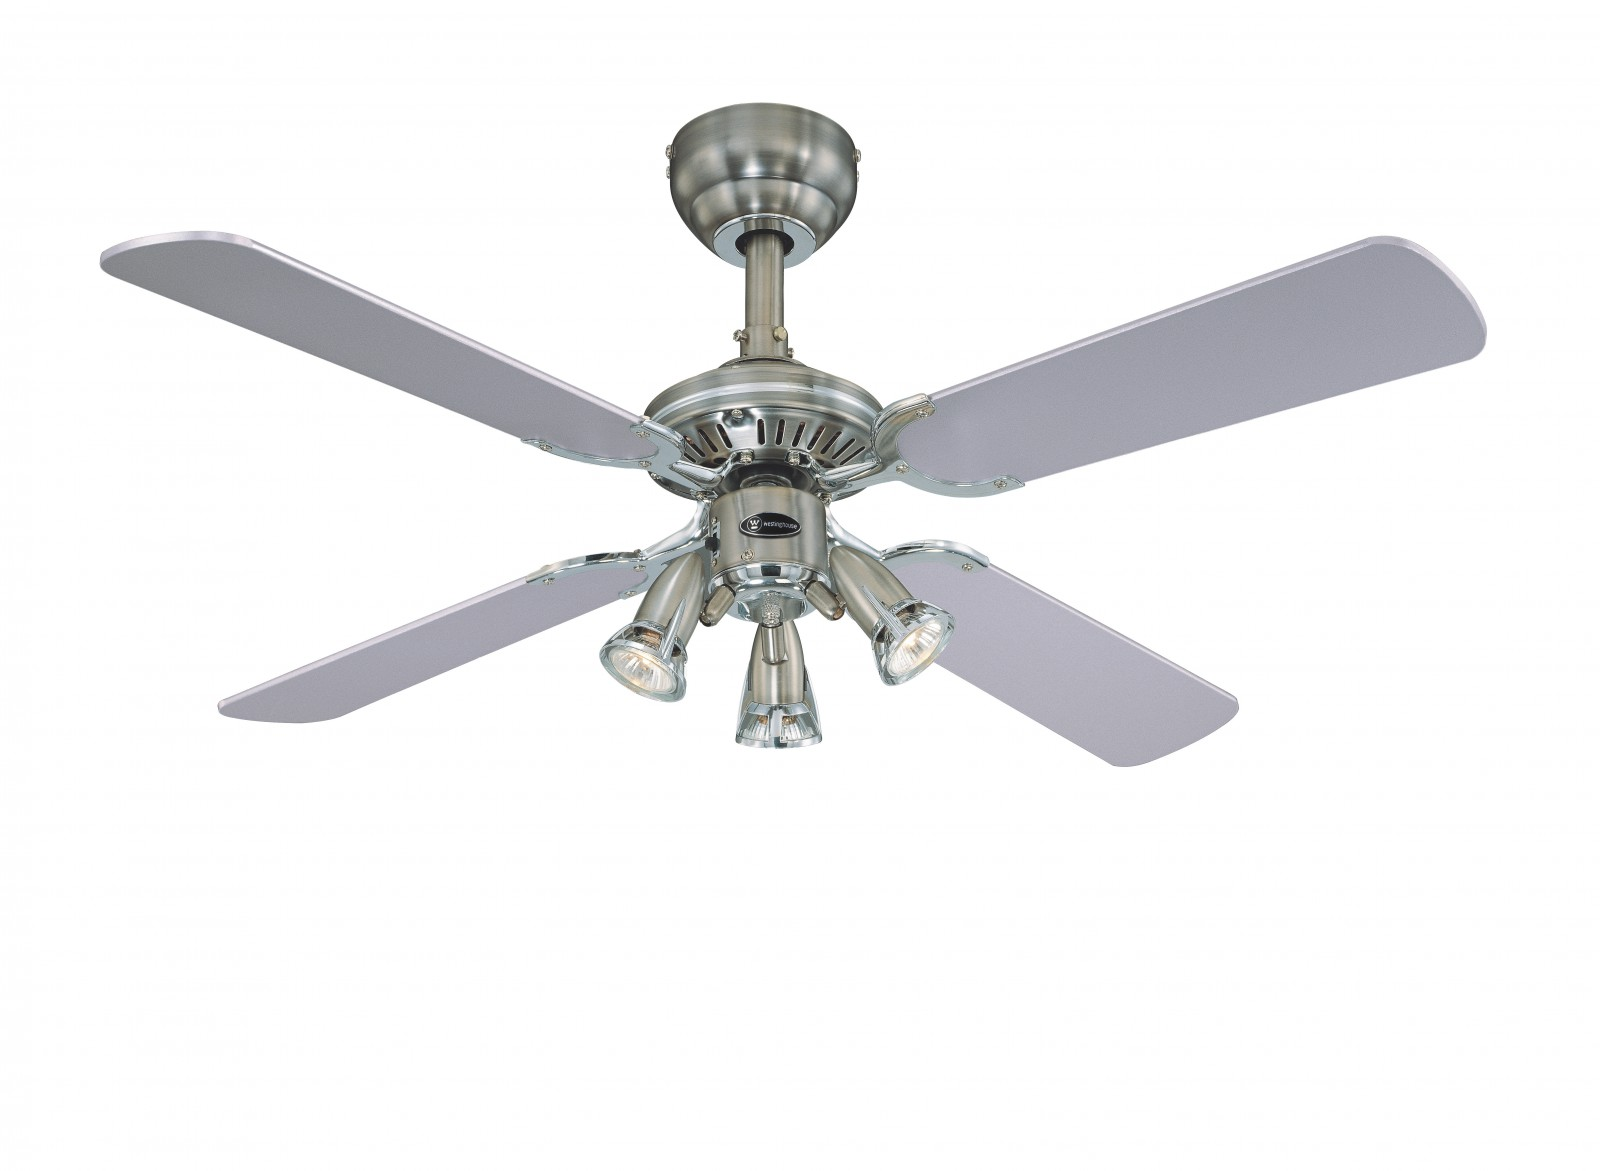 Westinghouse ceiling fan princess euro 105 cm 42 with lighting westinghouse ceiling fan princess euro 105 cm 42 with lighting aloadofball Image collections